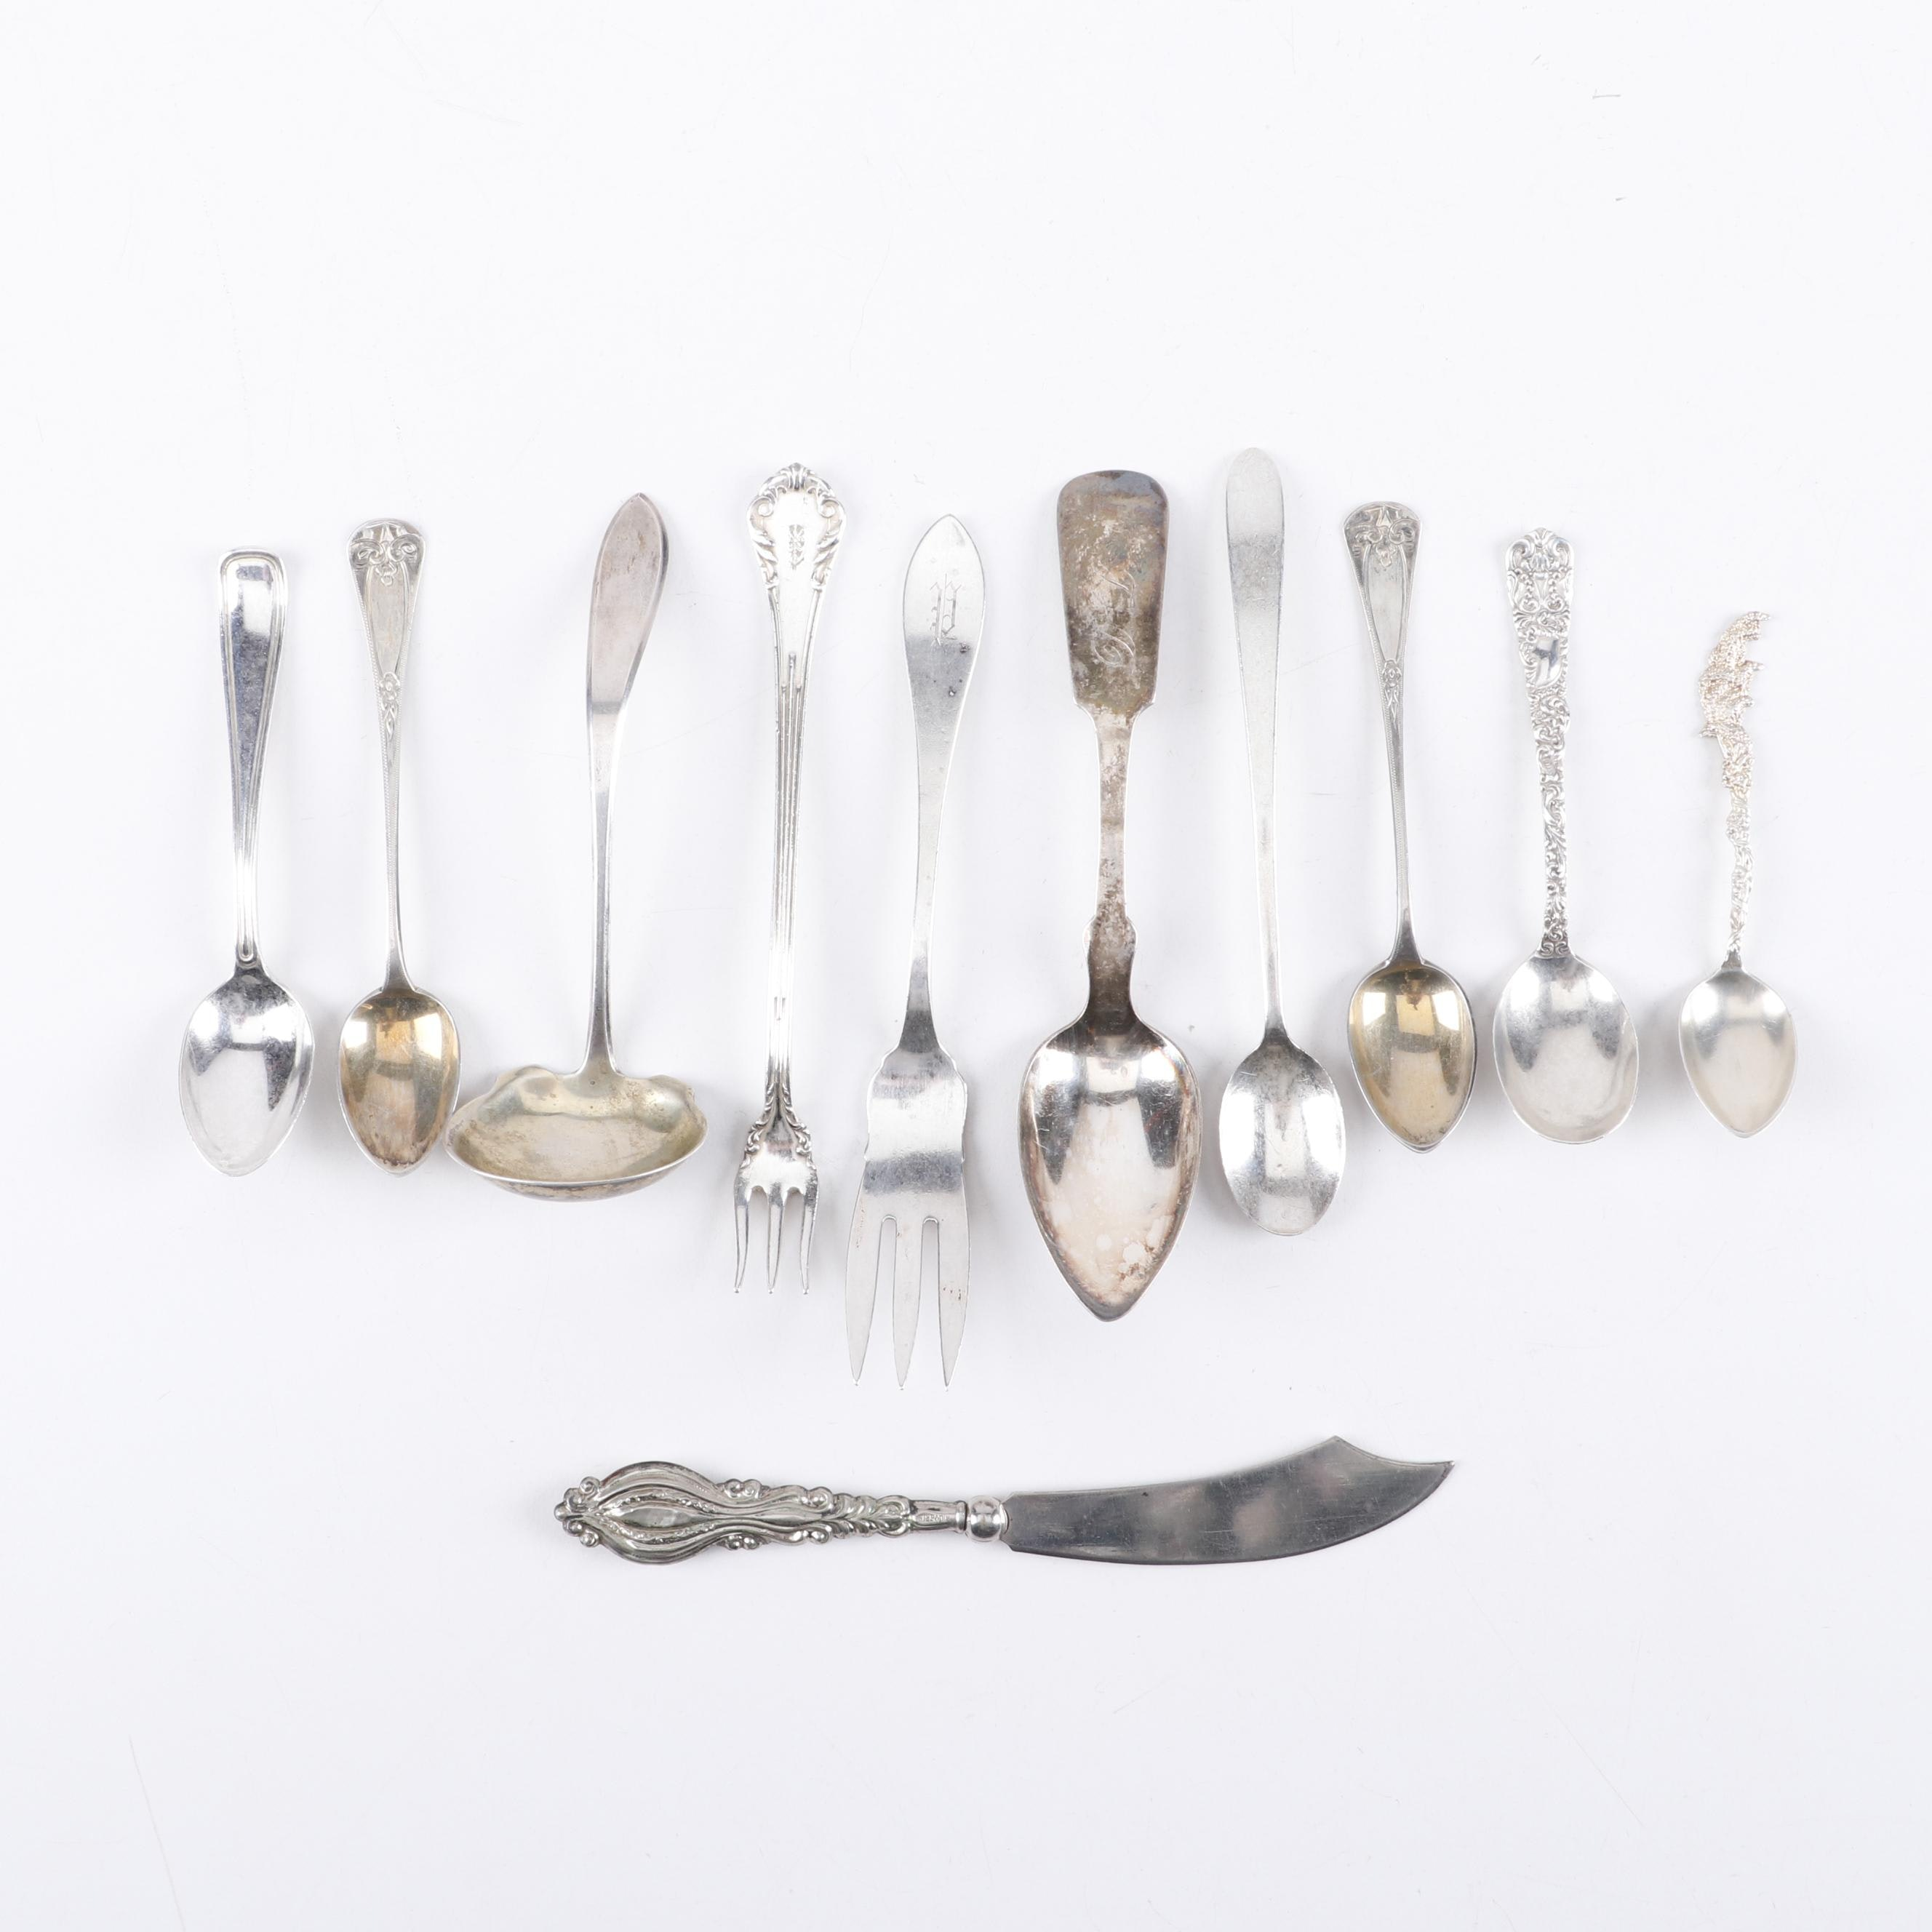 Mixed Flatware of Sterling Silver, Silver Plate and Coin Silver